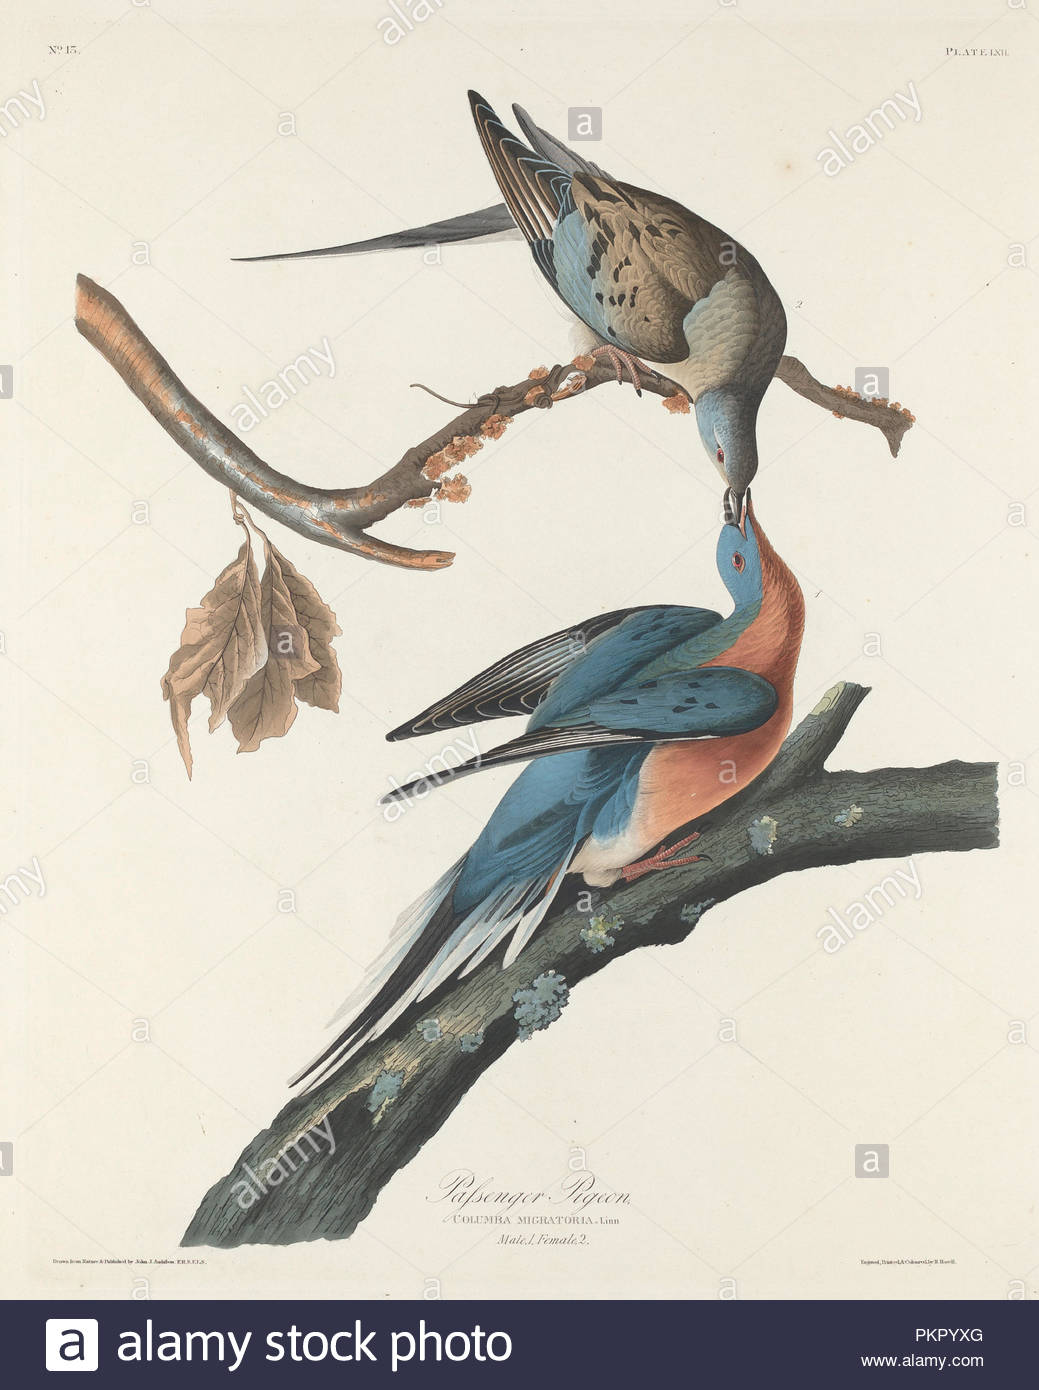 Passenger Pigeon. Dated: 1829. Dimensions: plate: 65.7 x 52.7 cm (25 7/8 x 20 3/4 in.)  sheet: 101 x 68 cm (39 3/4 x 26 3/4 in.). Medium: hand-colored etching and aquatint on Whatman paper. Museum: National Gallery of Art, Washington DC. Author: Robert Havell after John James Audubon. - Stock Image